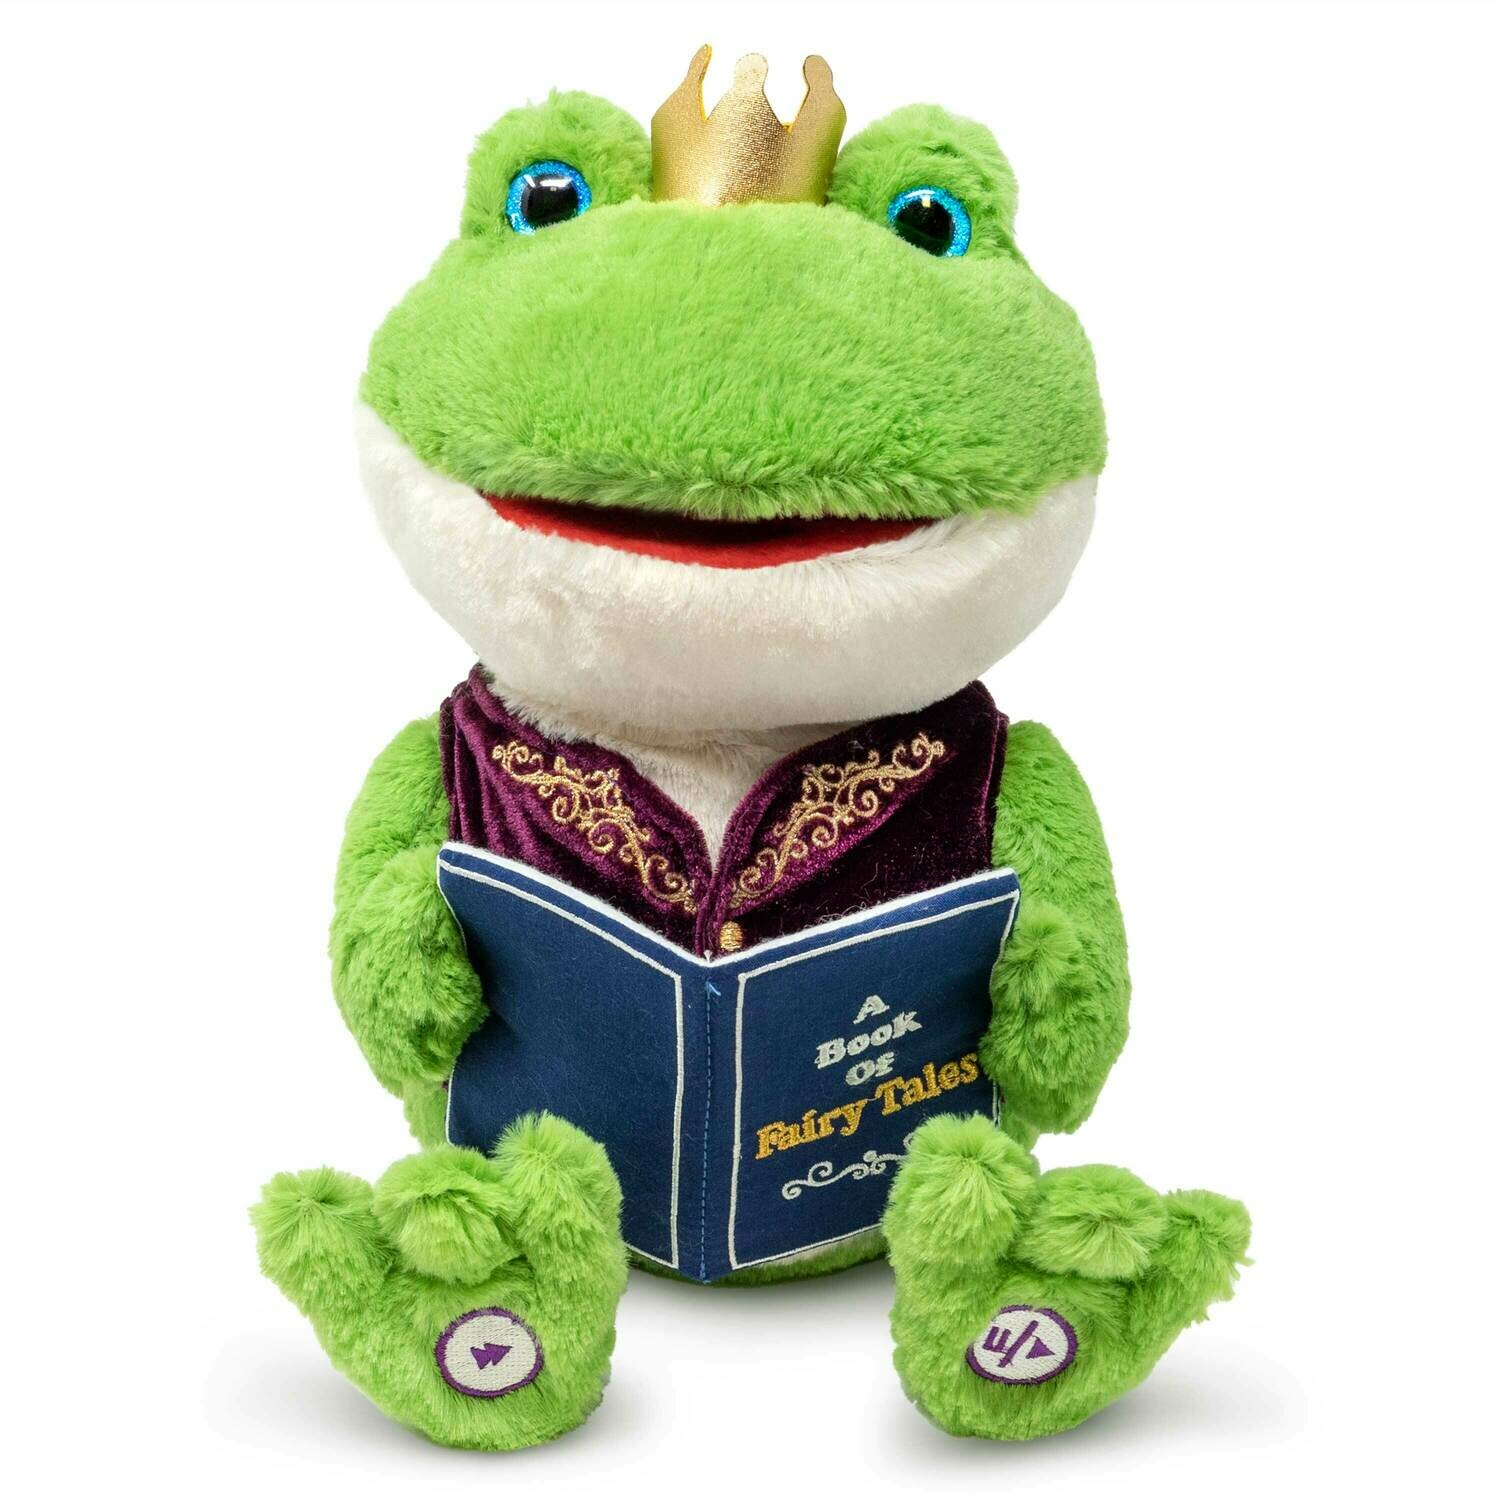 Hadley the Storytelling Frog